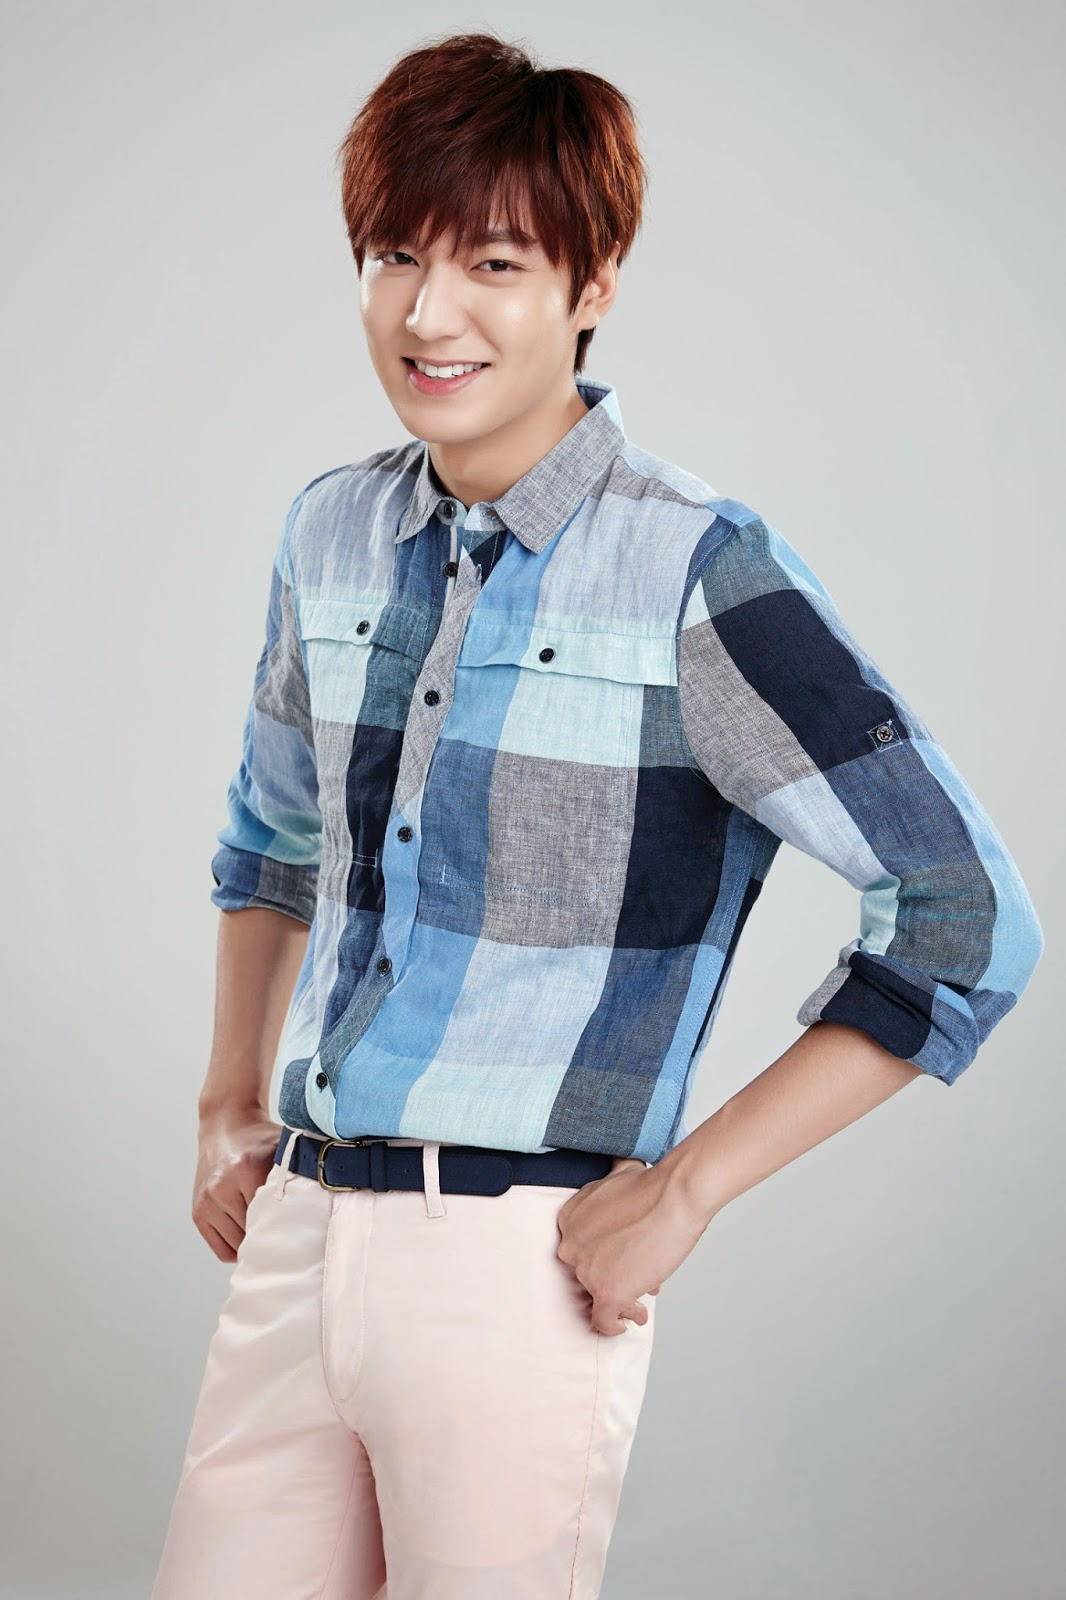 The Imaginary World Of Monika Lee Min Ho Lotte Duty